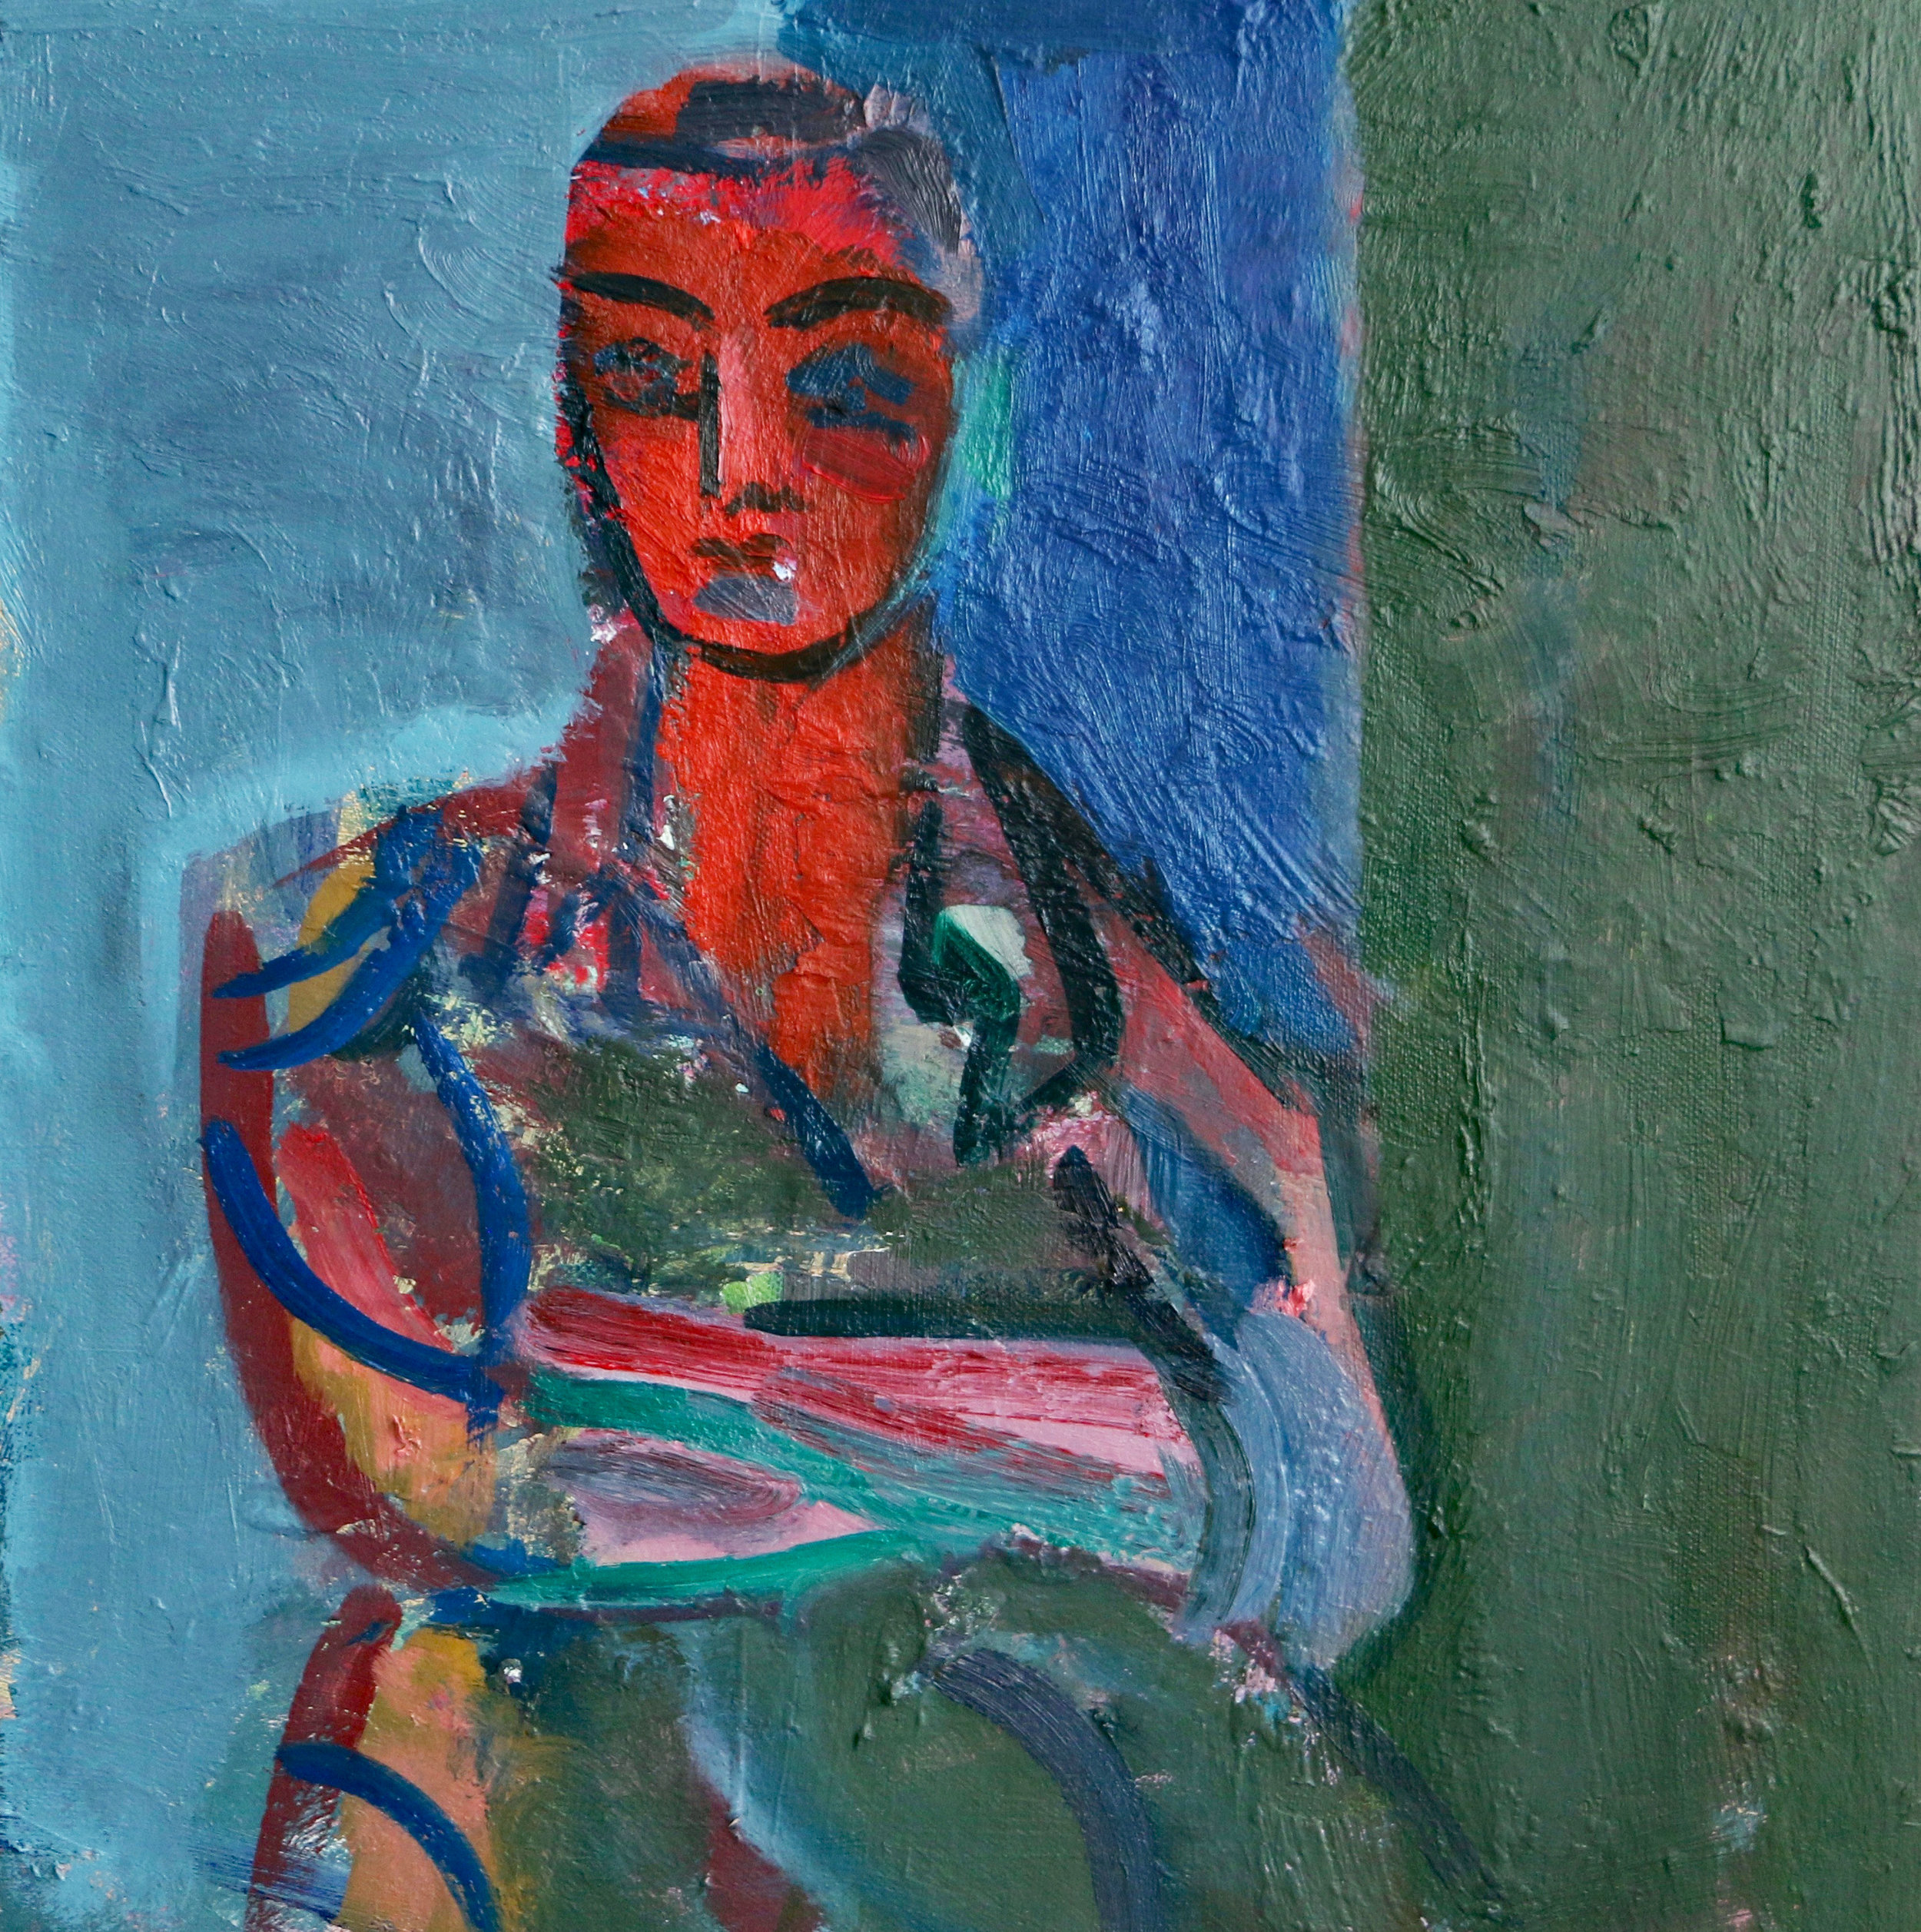 Title: Tess in her Danish Dress II  Size: 40 x 40 cm  Medium: Oil on canvas  Price: SOLD